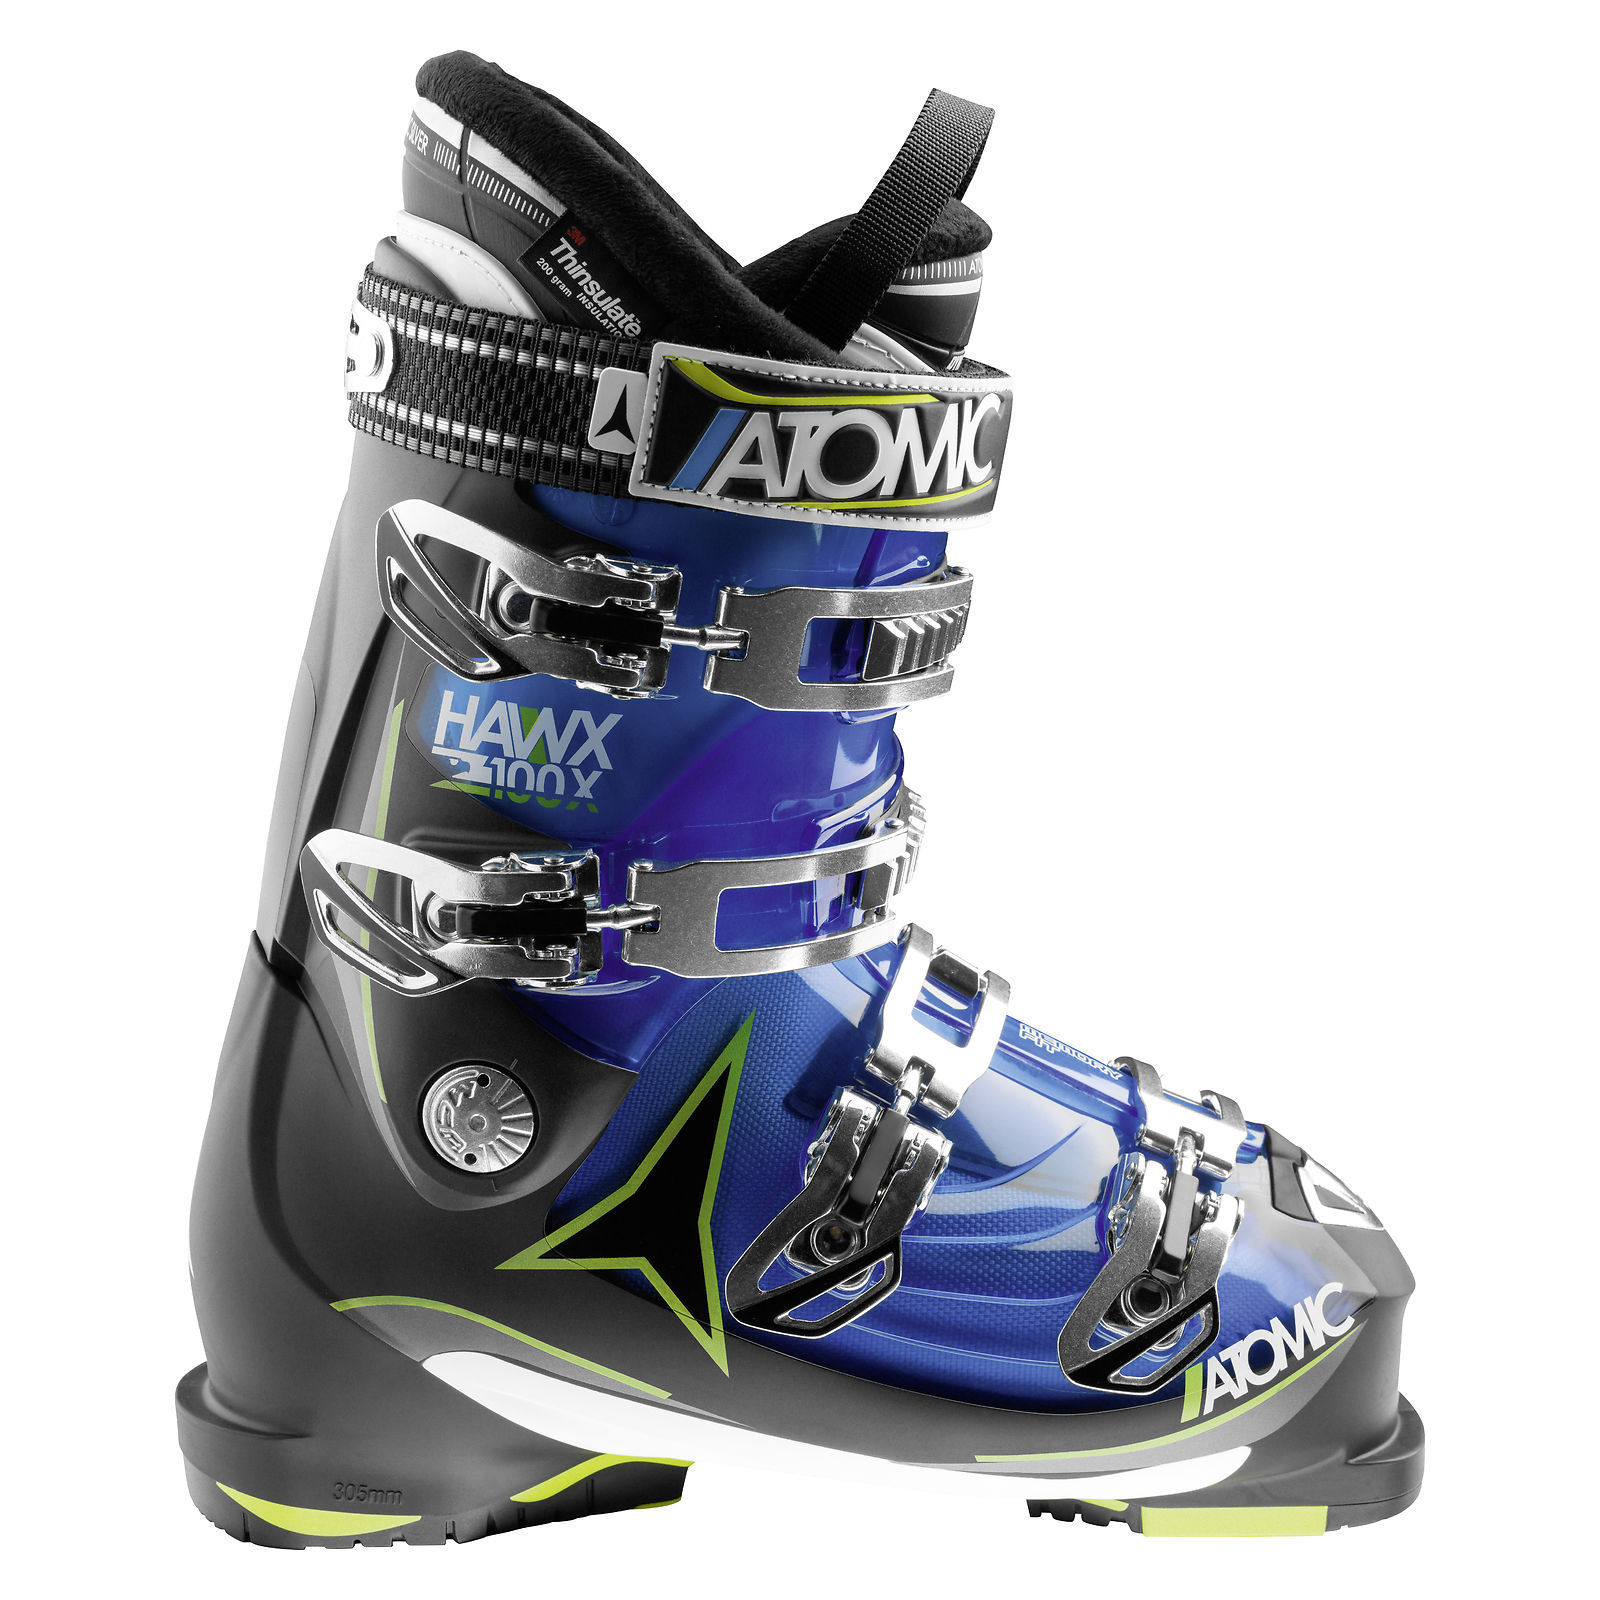 Buty Atomic Hawx 2.0 100X AE5012260 - outlet:30.5